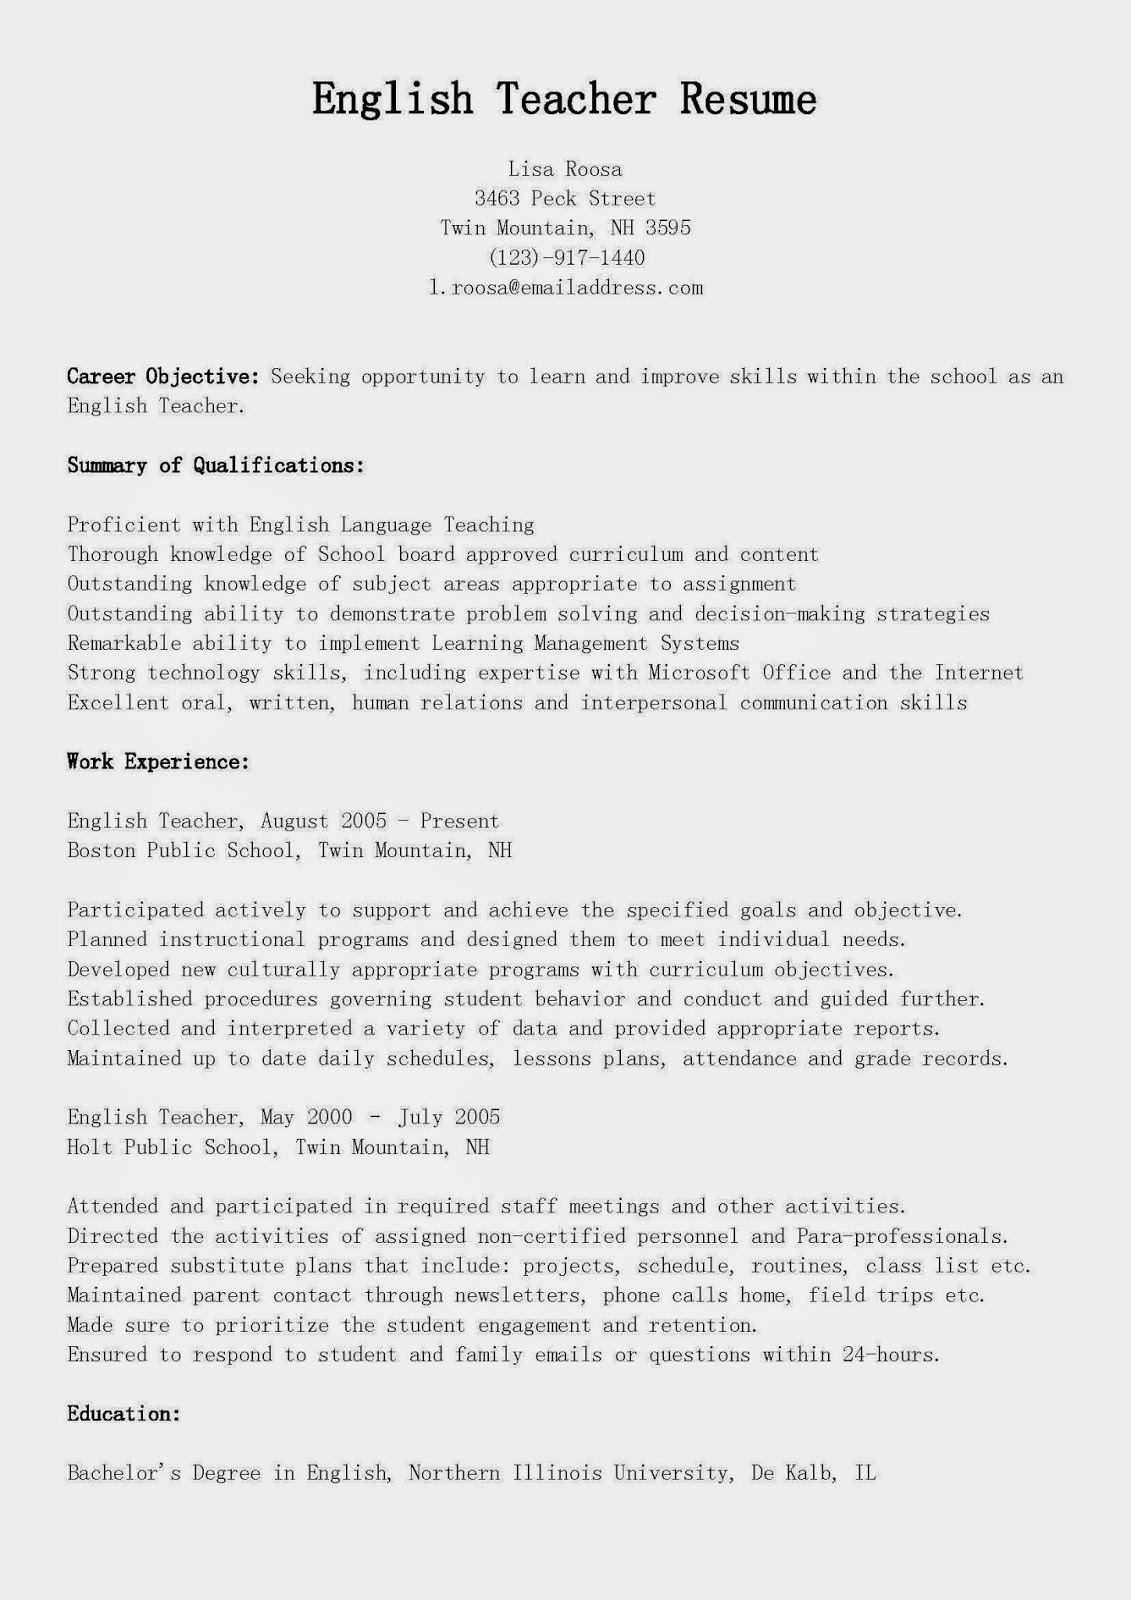 English Tutor Resume English Tutor Resume Ideal Vistalist Co